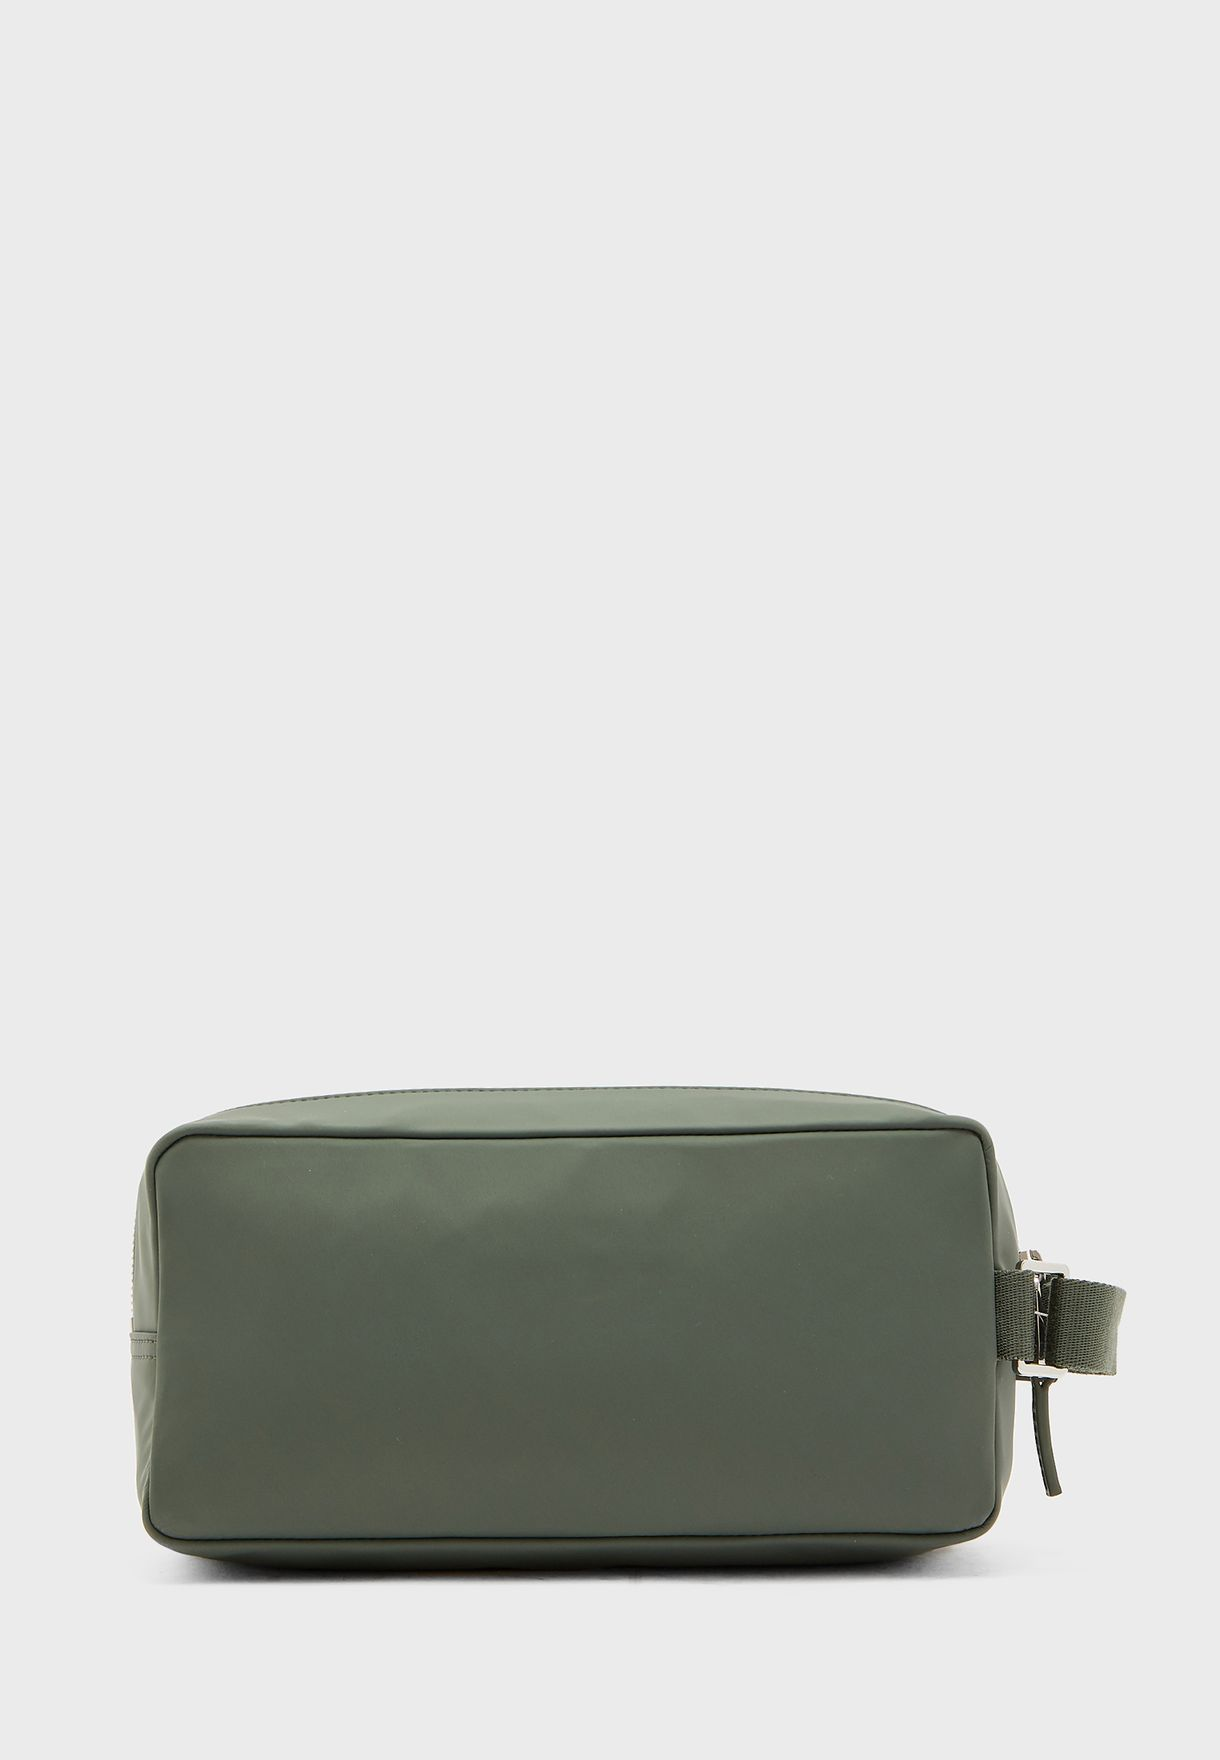 Cuir Animation Toiletry Bag